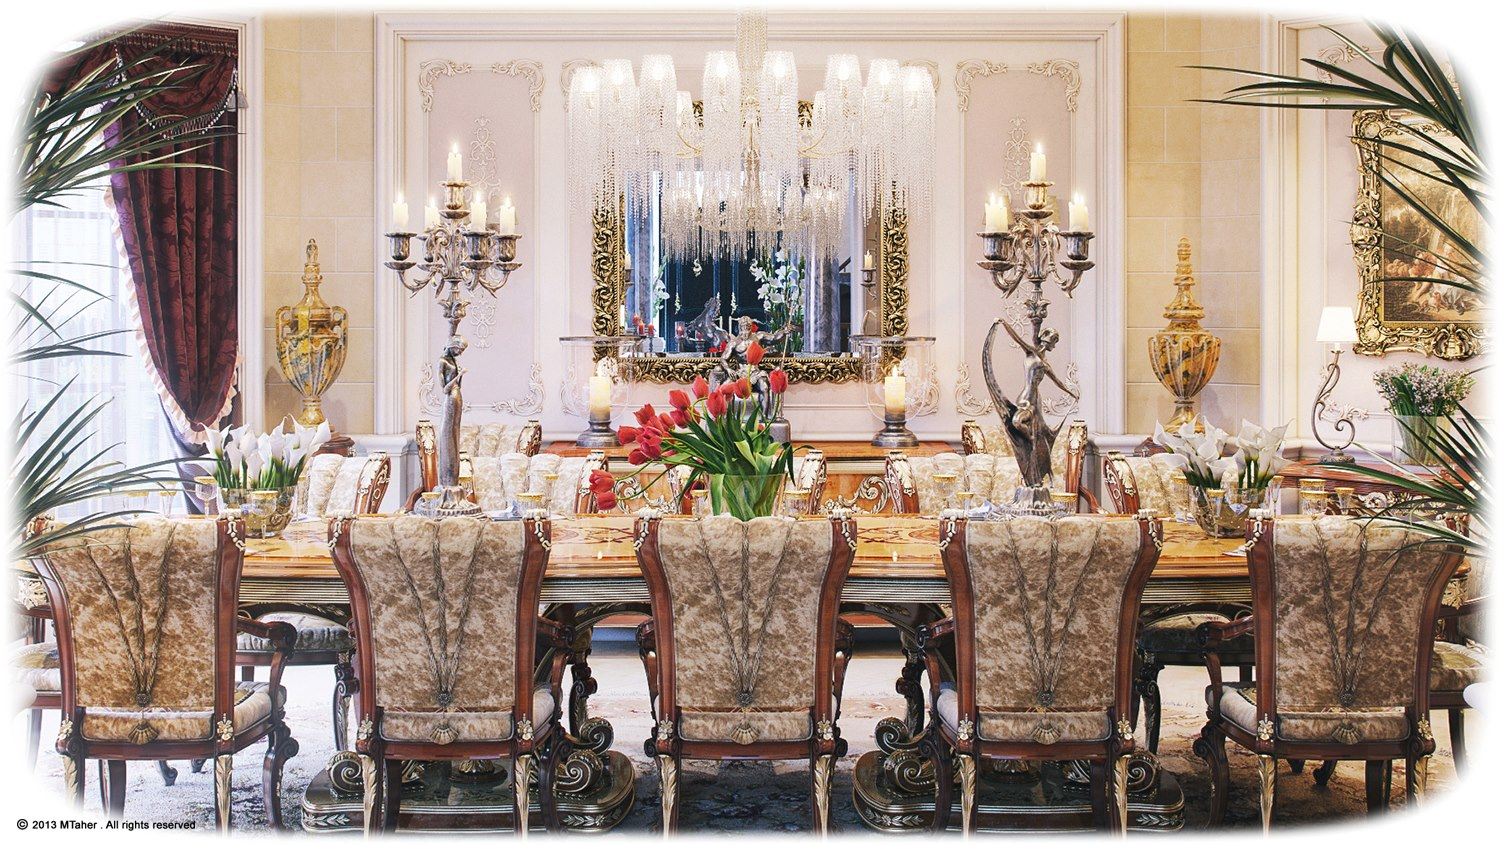 luxurious dining rooms | Luxury Villa in Qatar [Visualized]